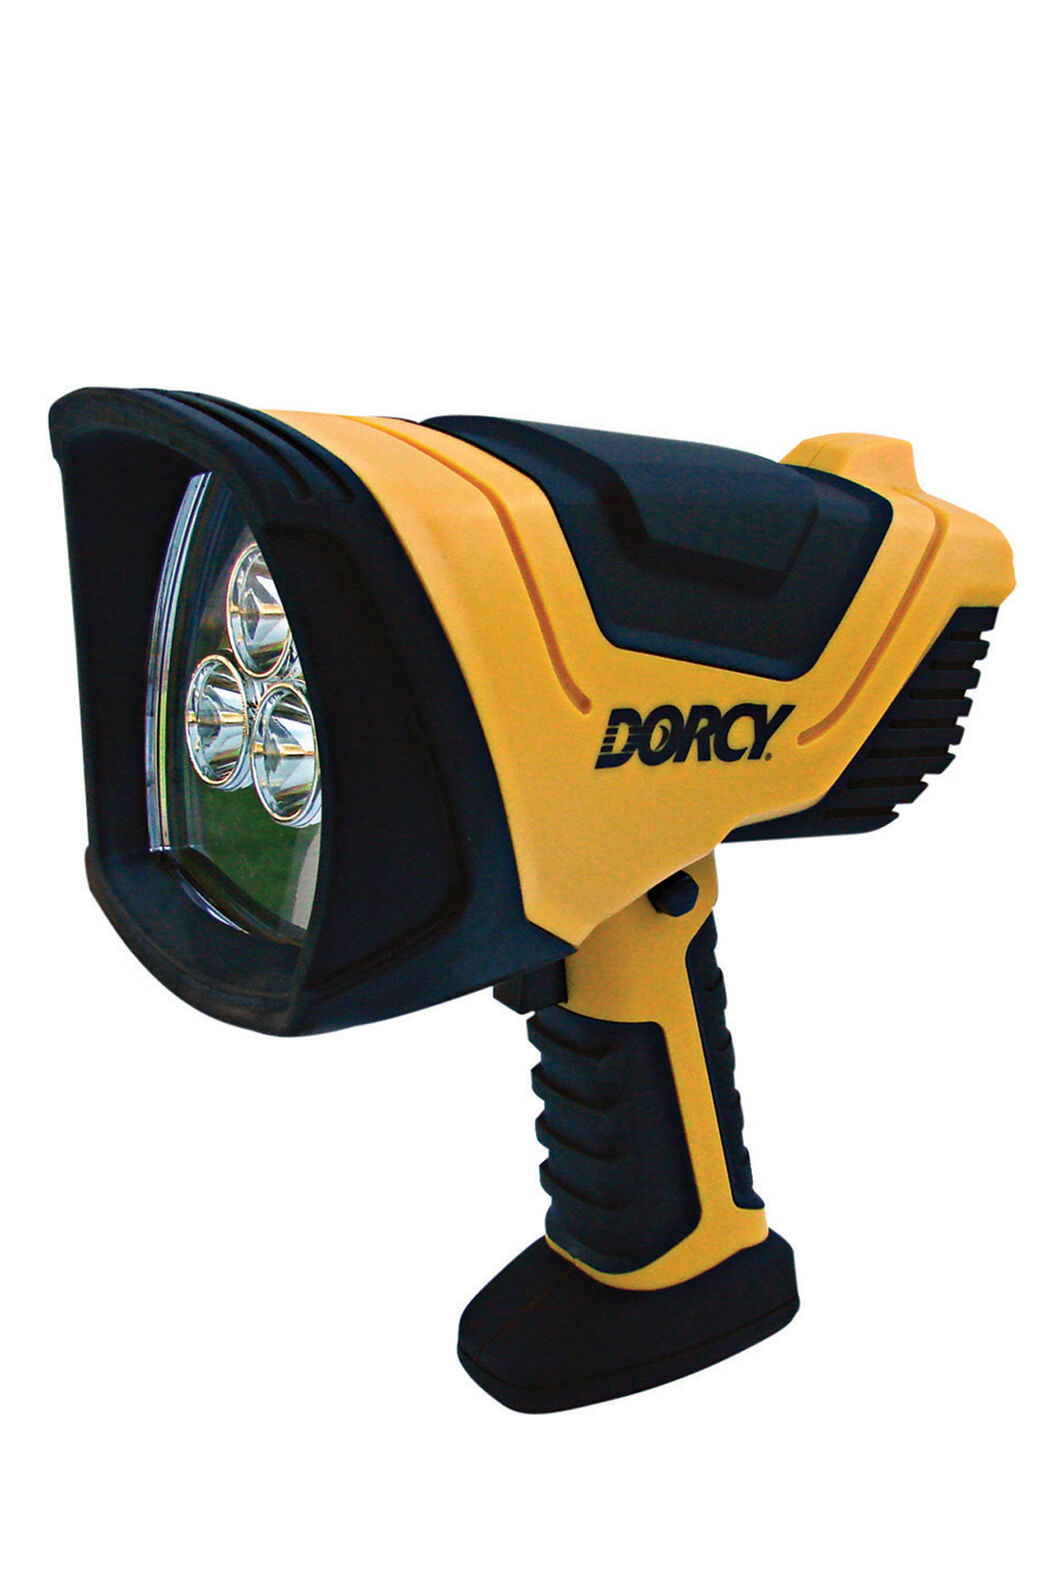 Dory LED Rechargeable Spotlight, None, hi-res